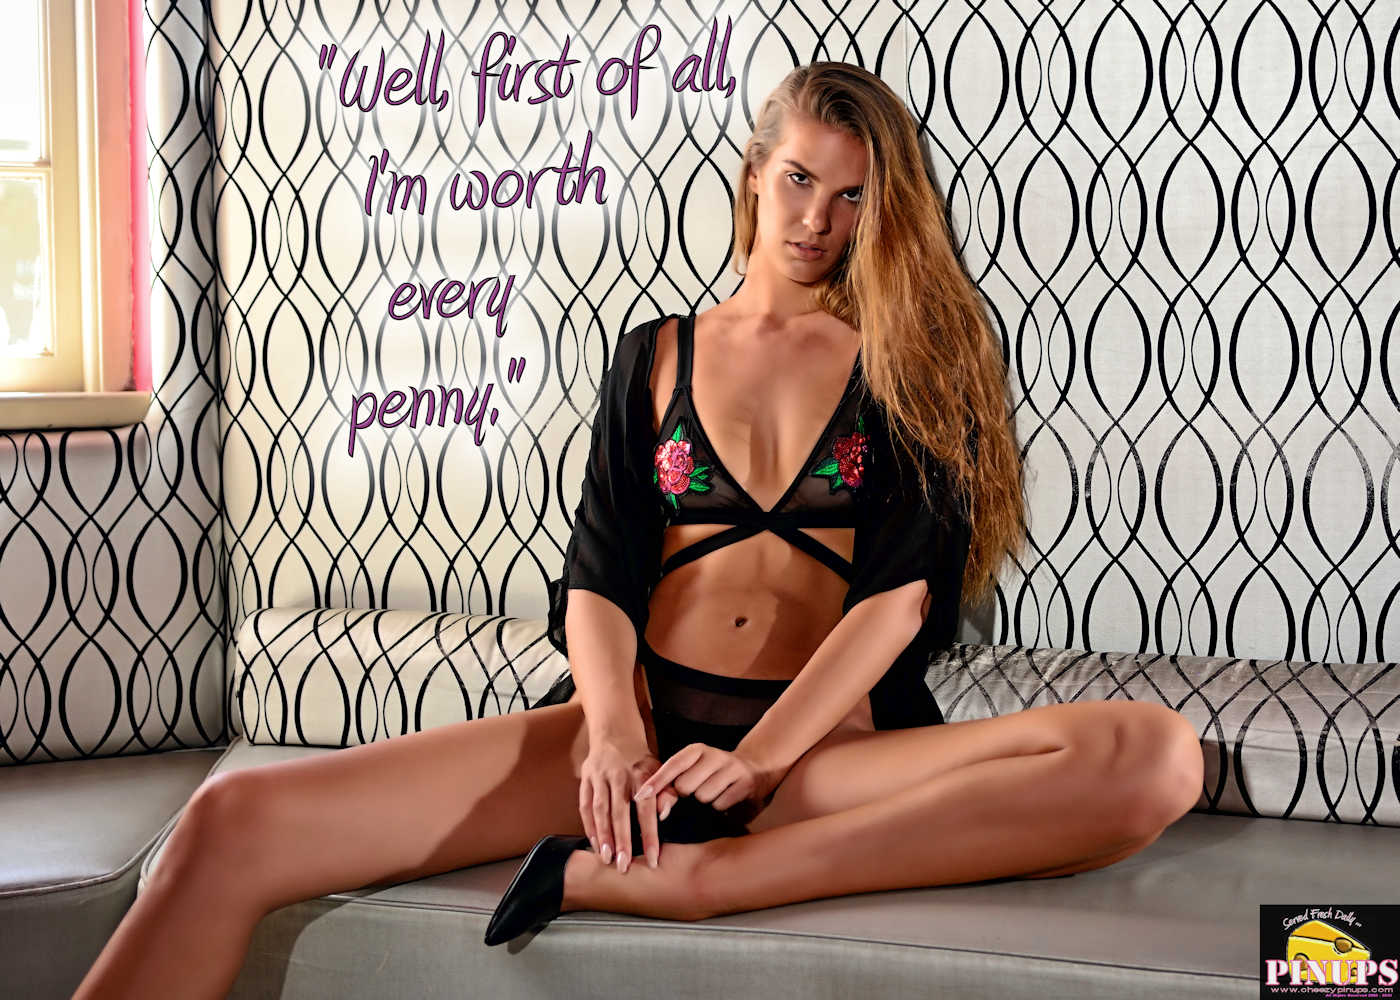 """Cheezy Pinup - January 12, 2018   """"Well, first of all, I'm worth every penny."""" - Howard Stern Model: Nicki Hill"""